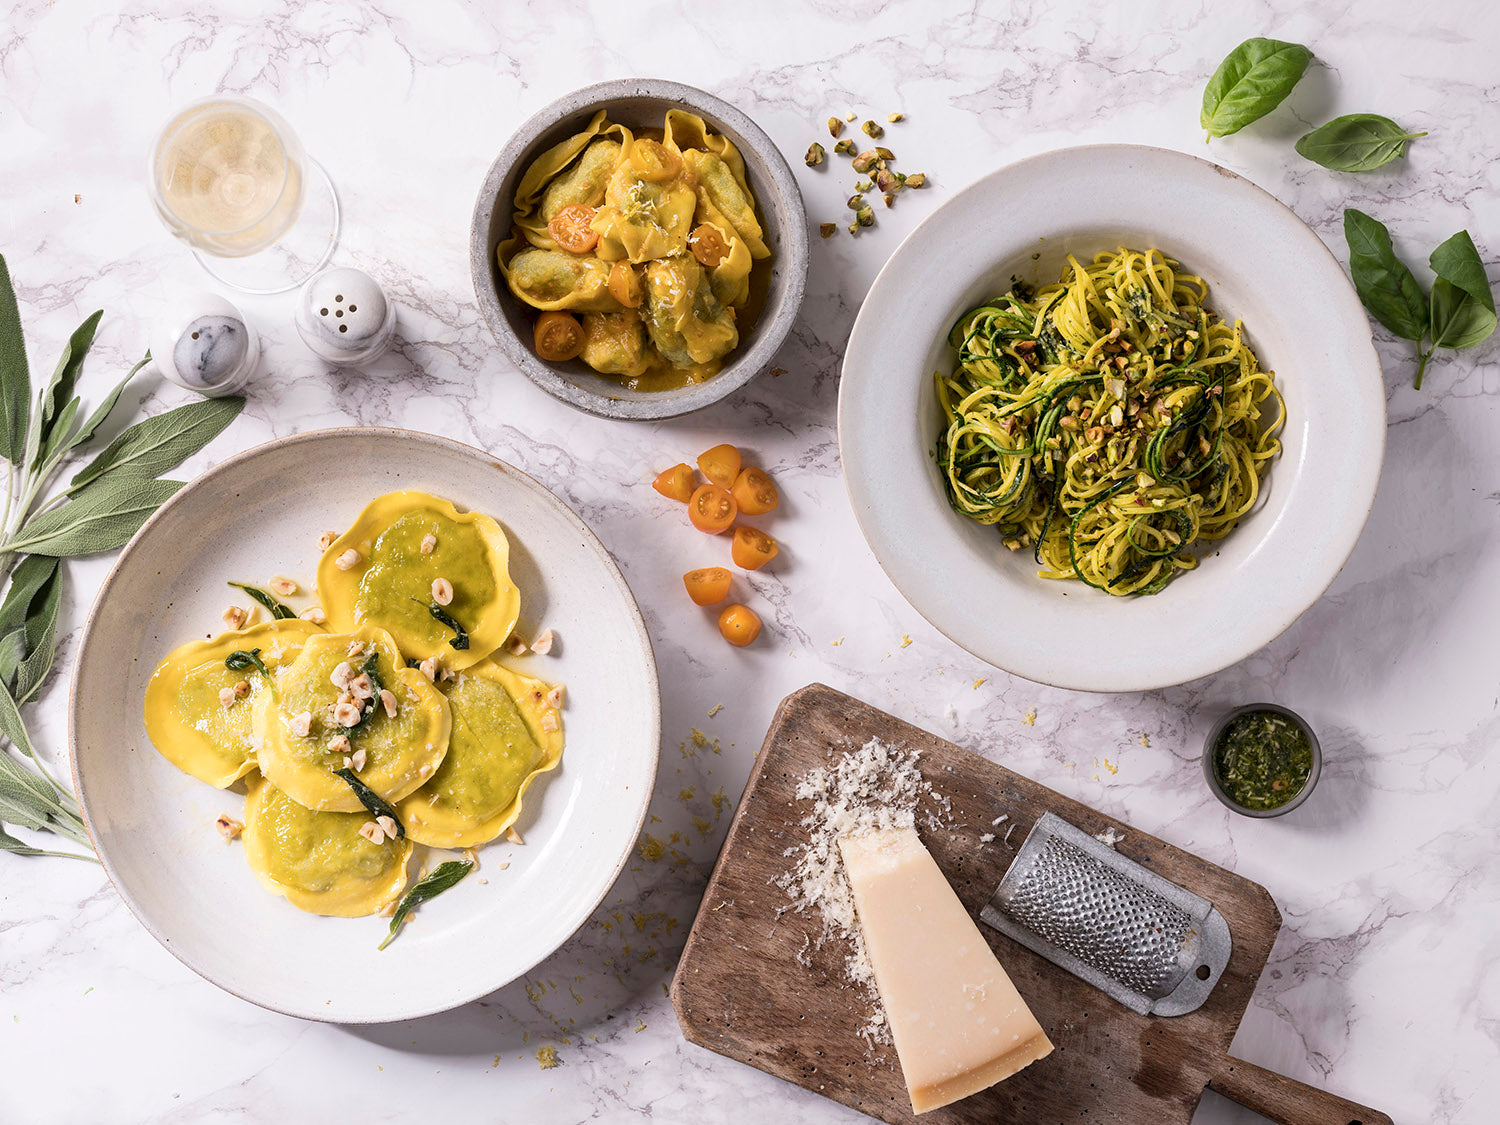 selection of girasoli pasta, tortelloni pasta and courgetti pasta with parmesan, tomatoe and hazelnut garnishes